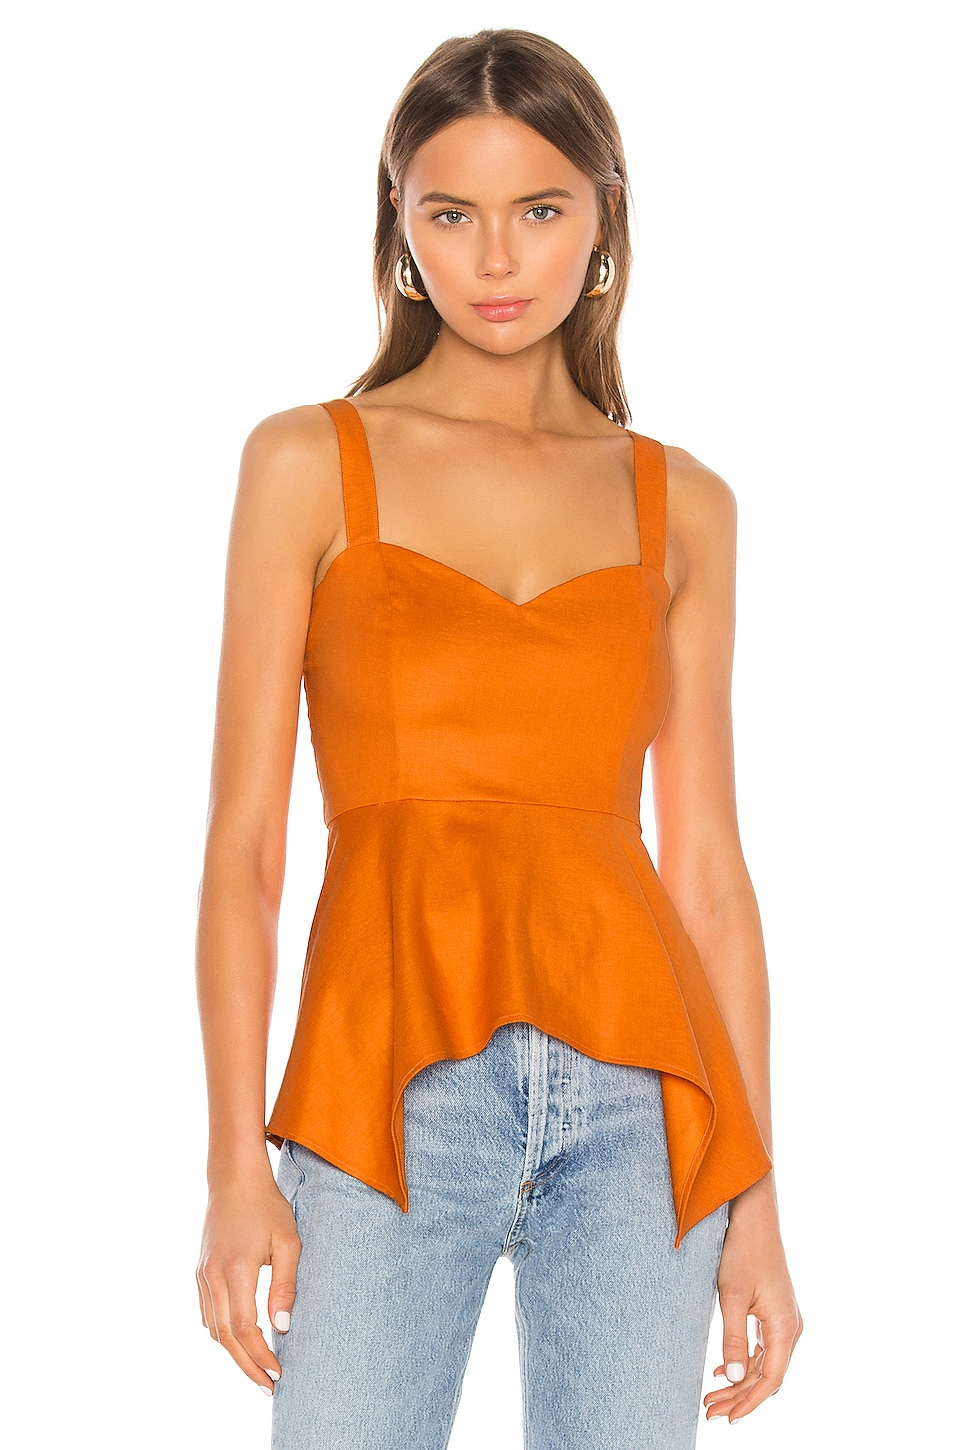 Camila Coelho Rosalie Top in Desert Orange